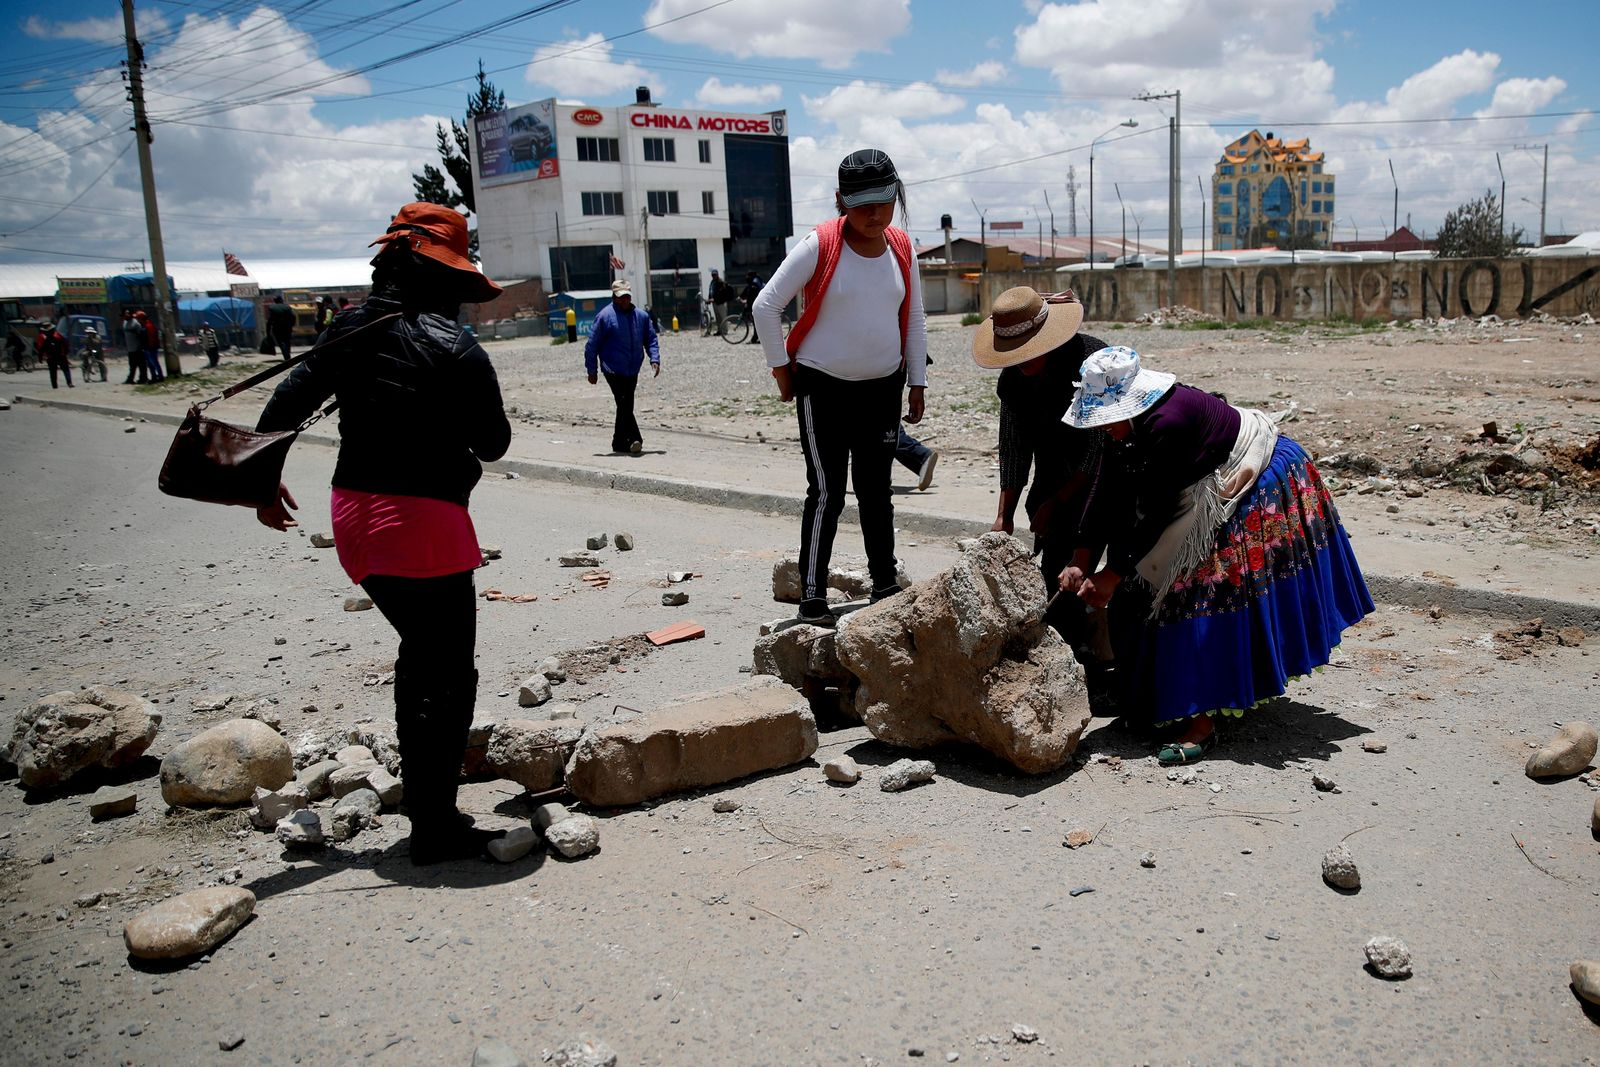 Supporters of former President Evo Morales set up barricades at the road leading to a gas plant in El Alto, on the outskirts of La Paz, Bolivia, Tuesday, Nov. 19, 2019.{ } (AP Photo/Natacha Pisarenko)